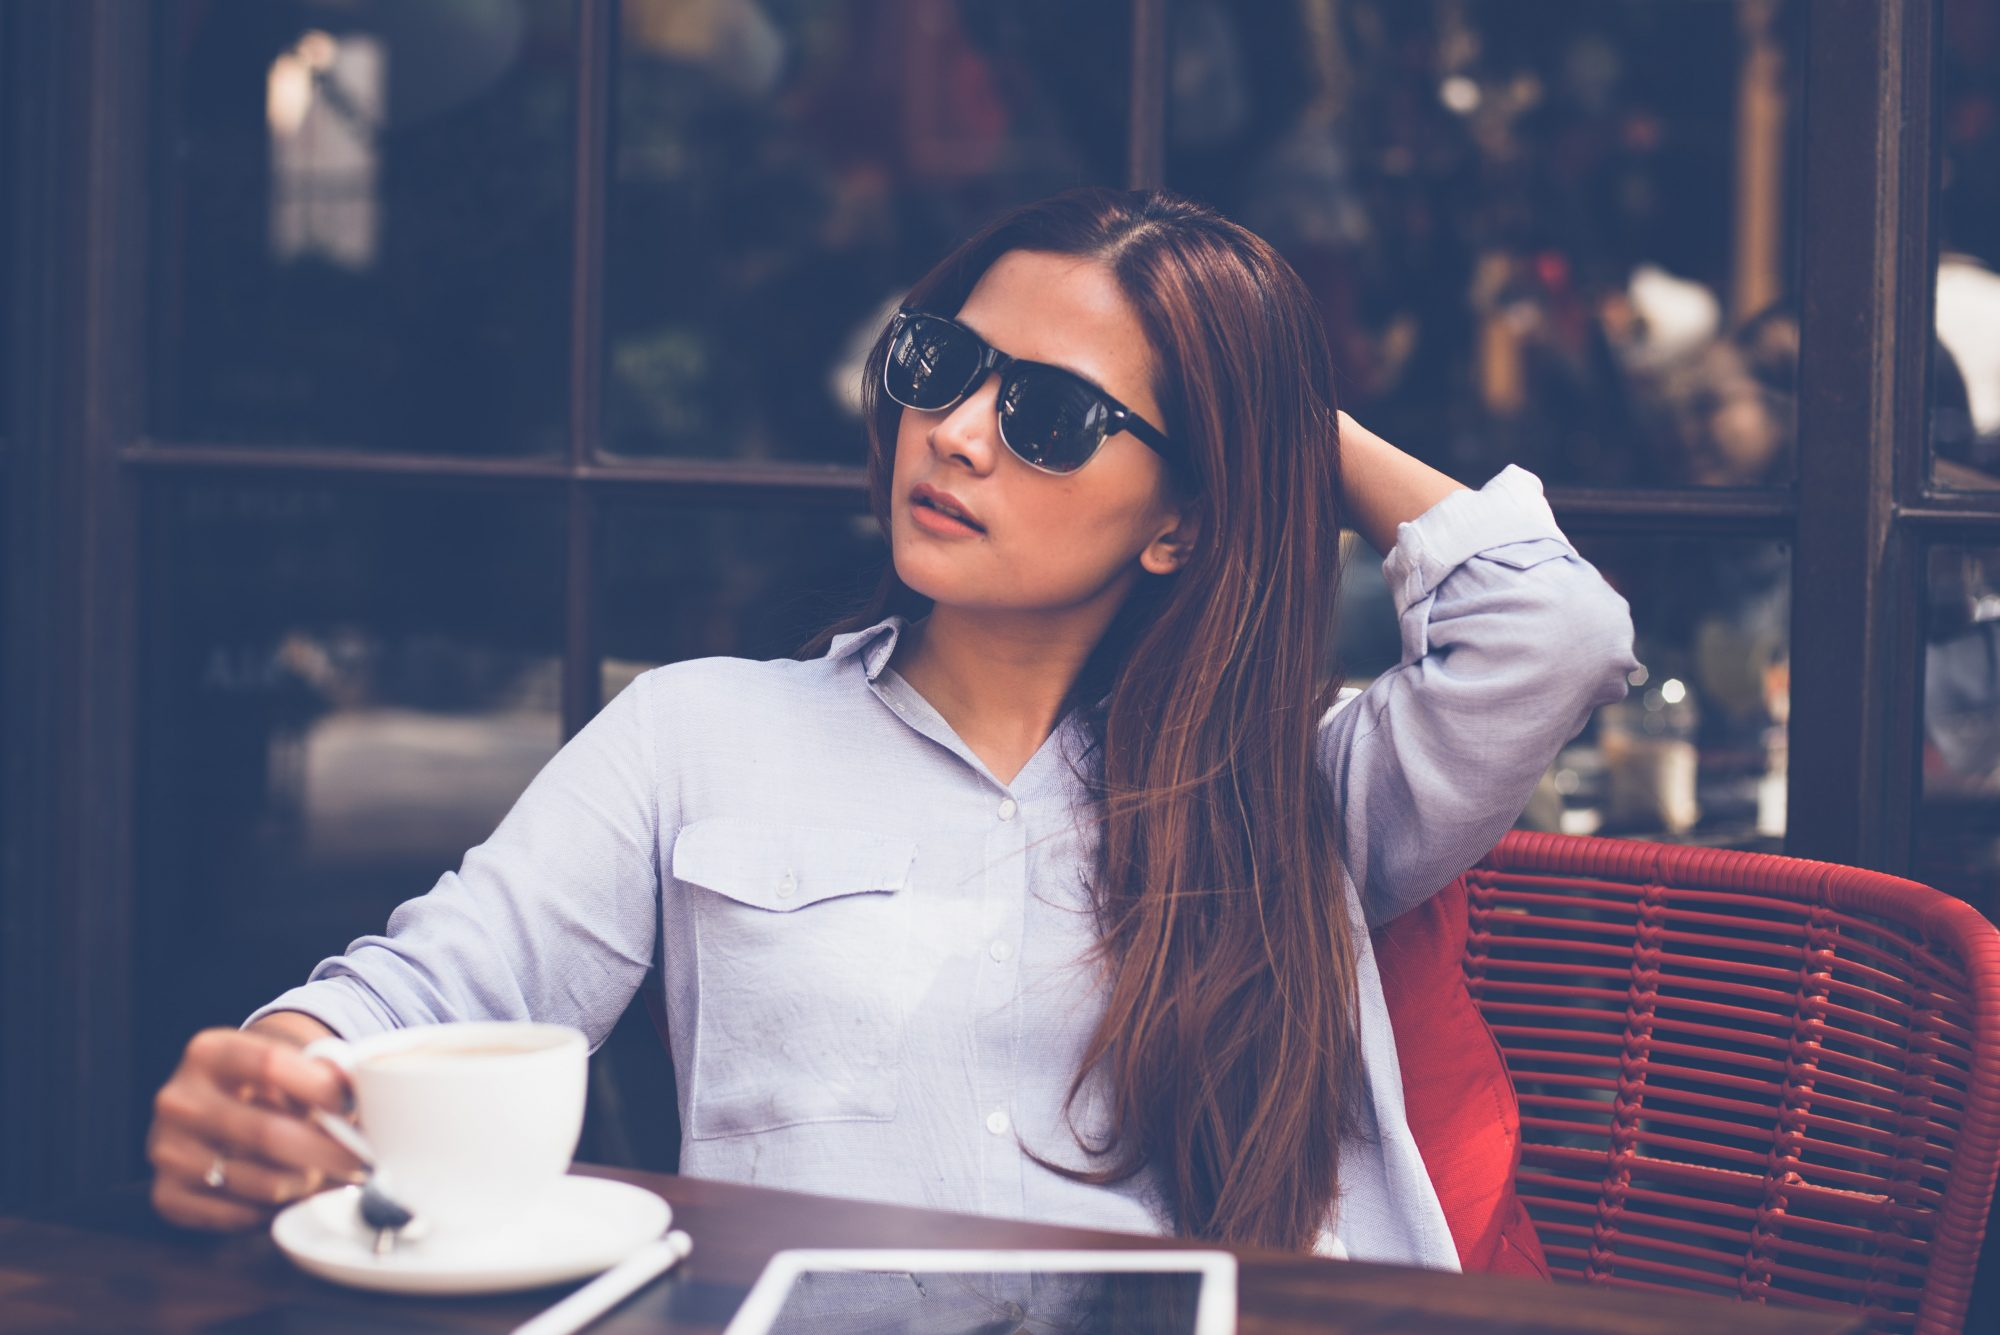 stylish young woman having coffee at an outdoor cafe patio